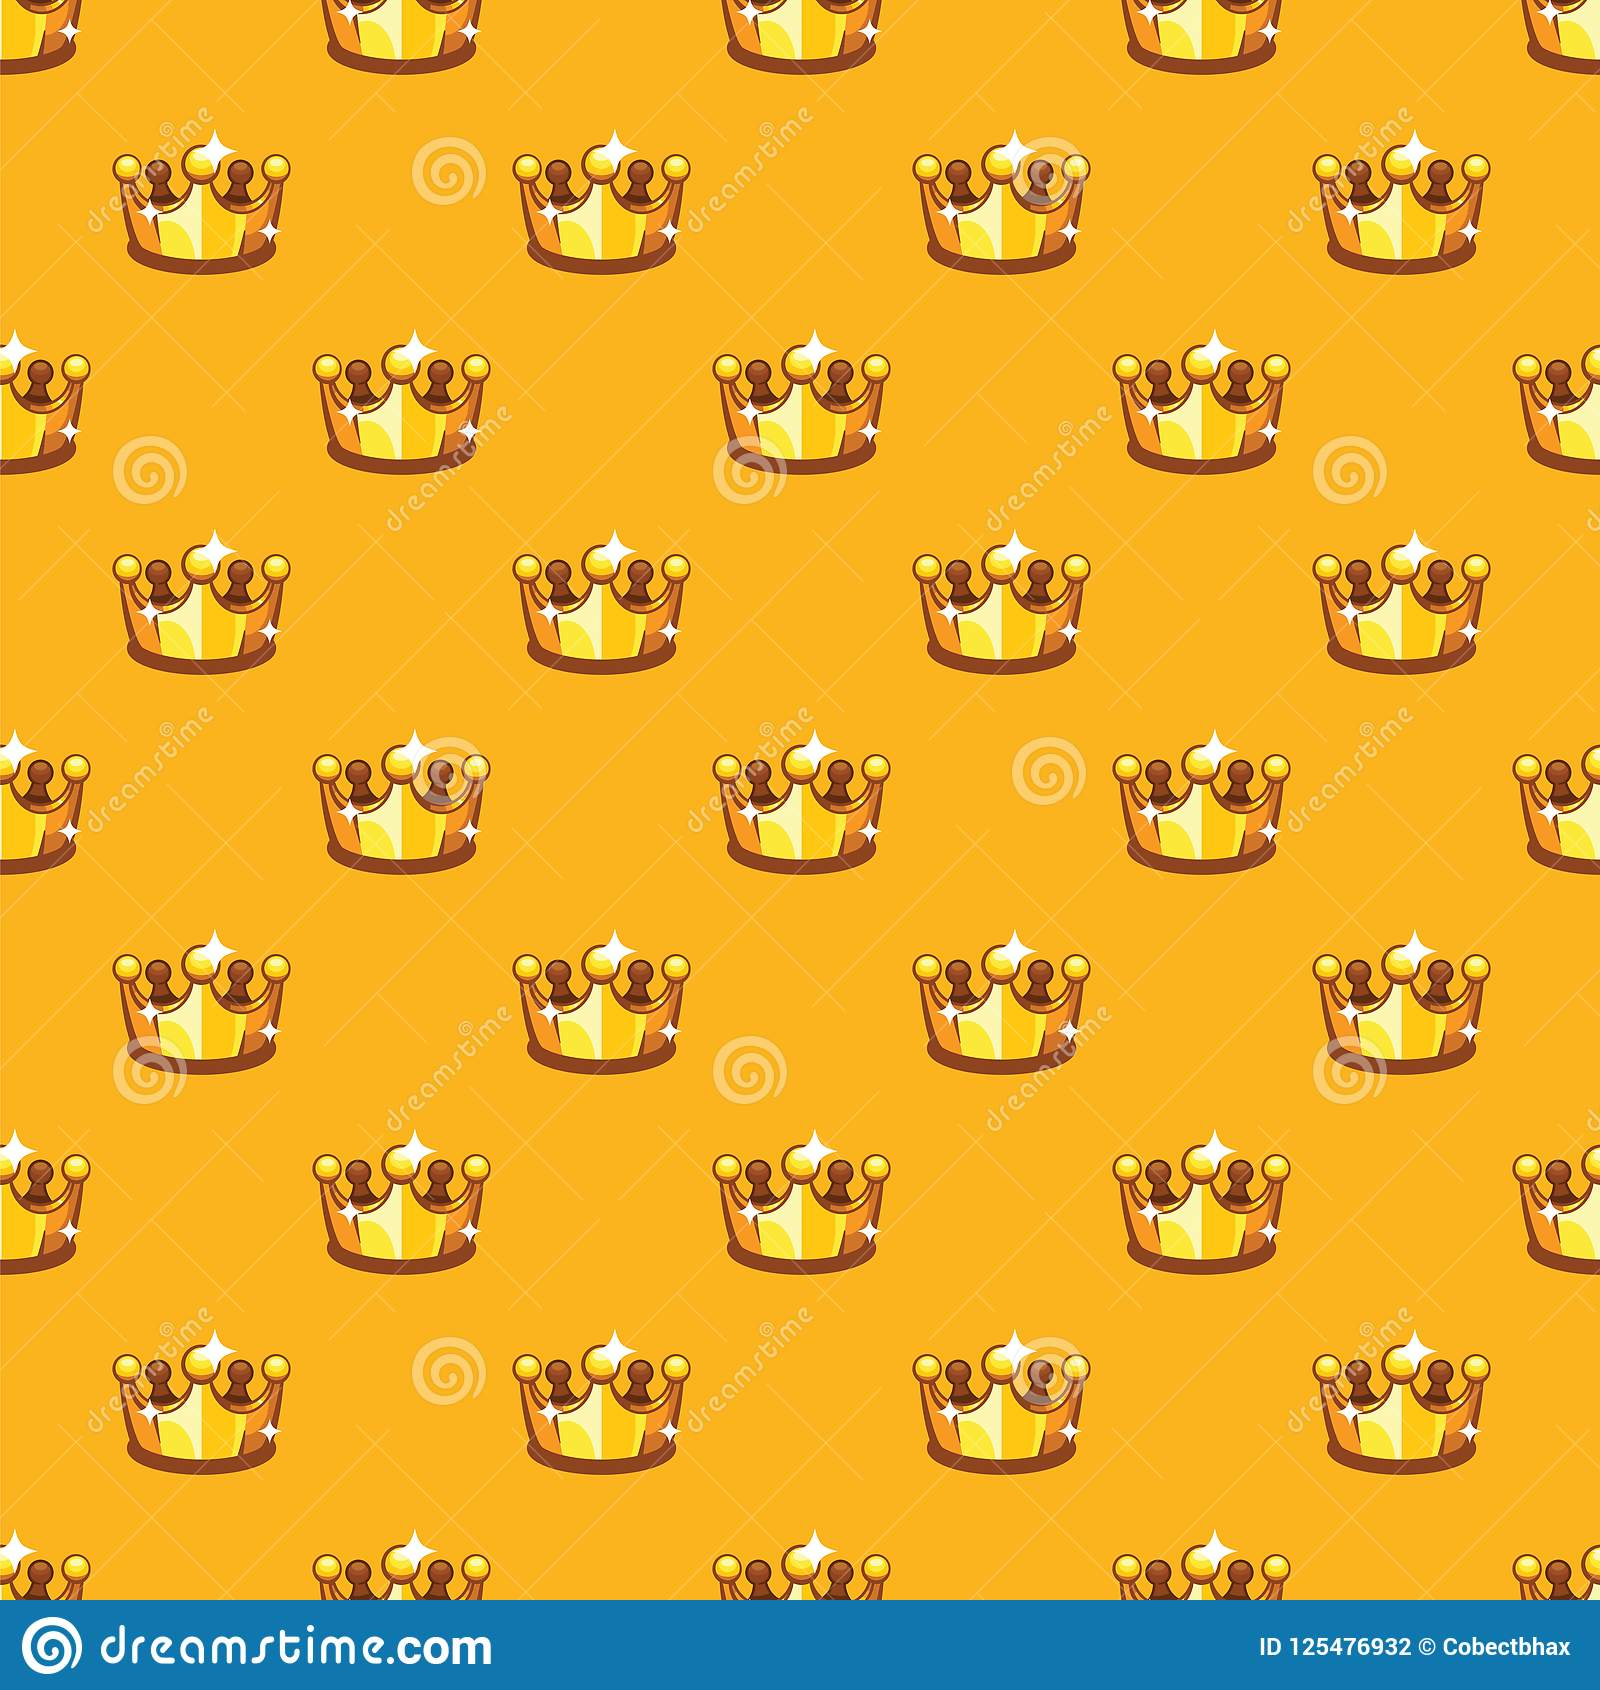 golden royal crown pattern background king and queen crown seamless